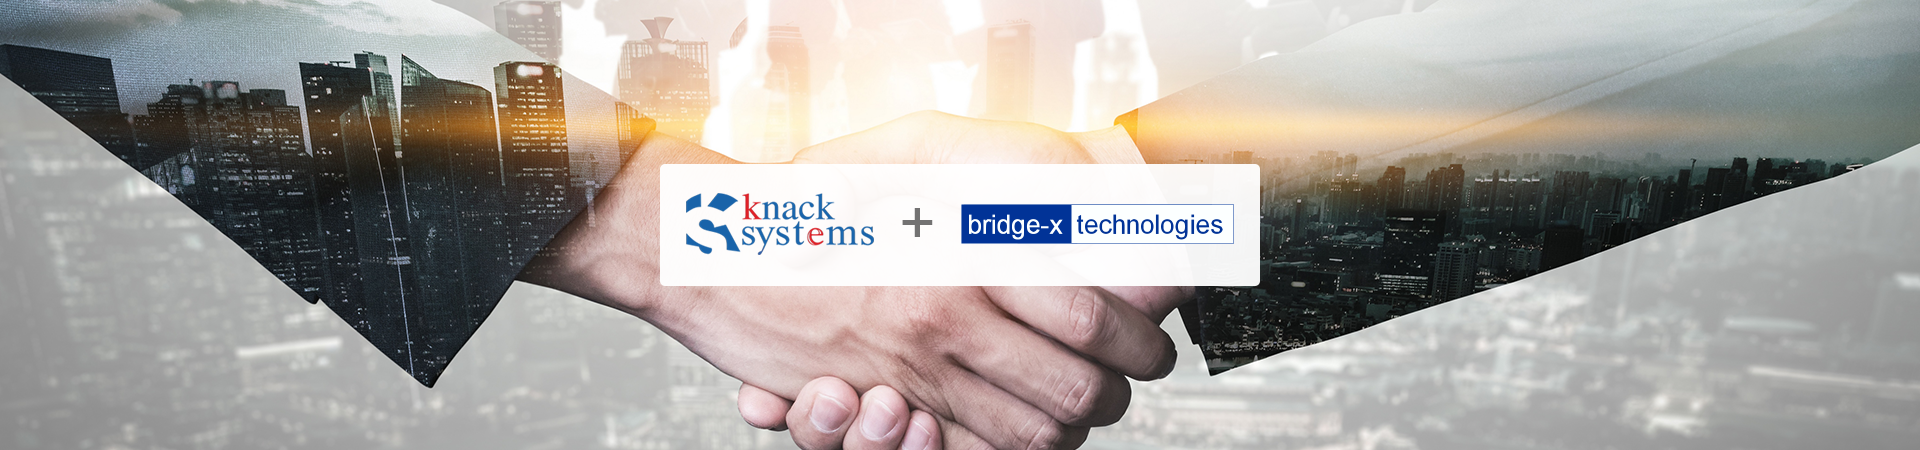 Knack Systems acquires Bridge-X